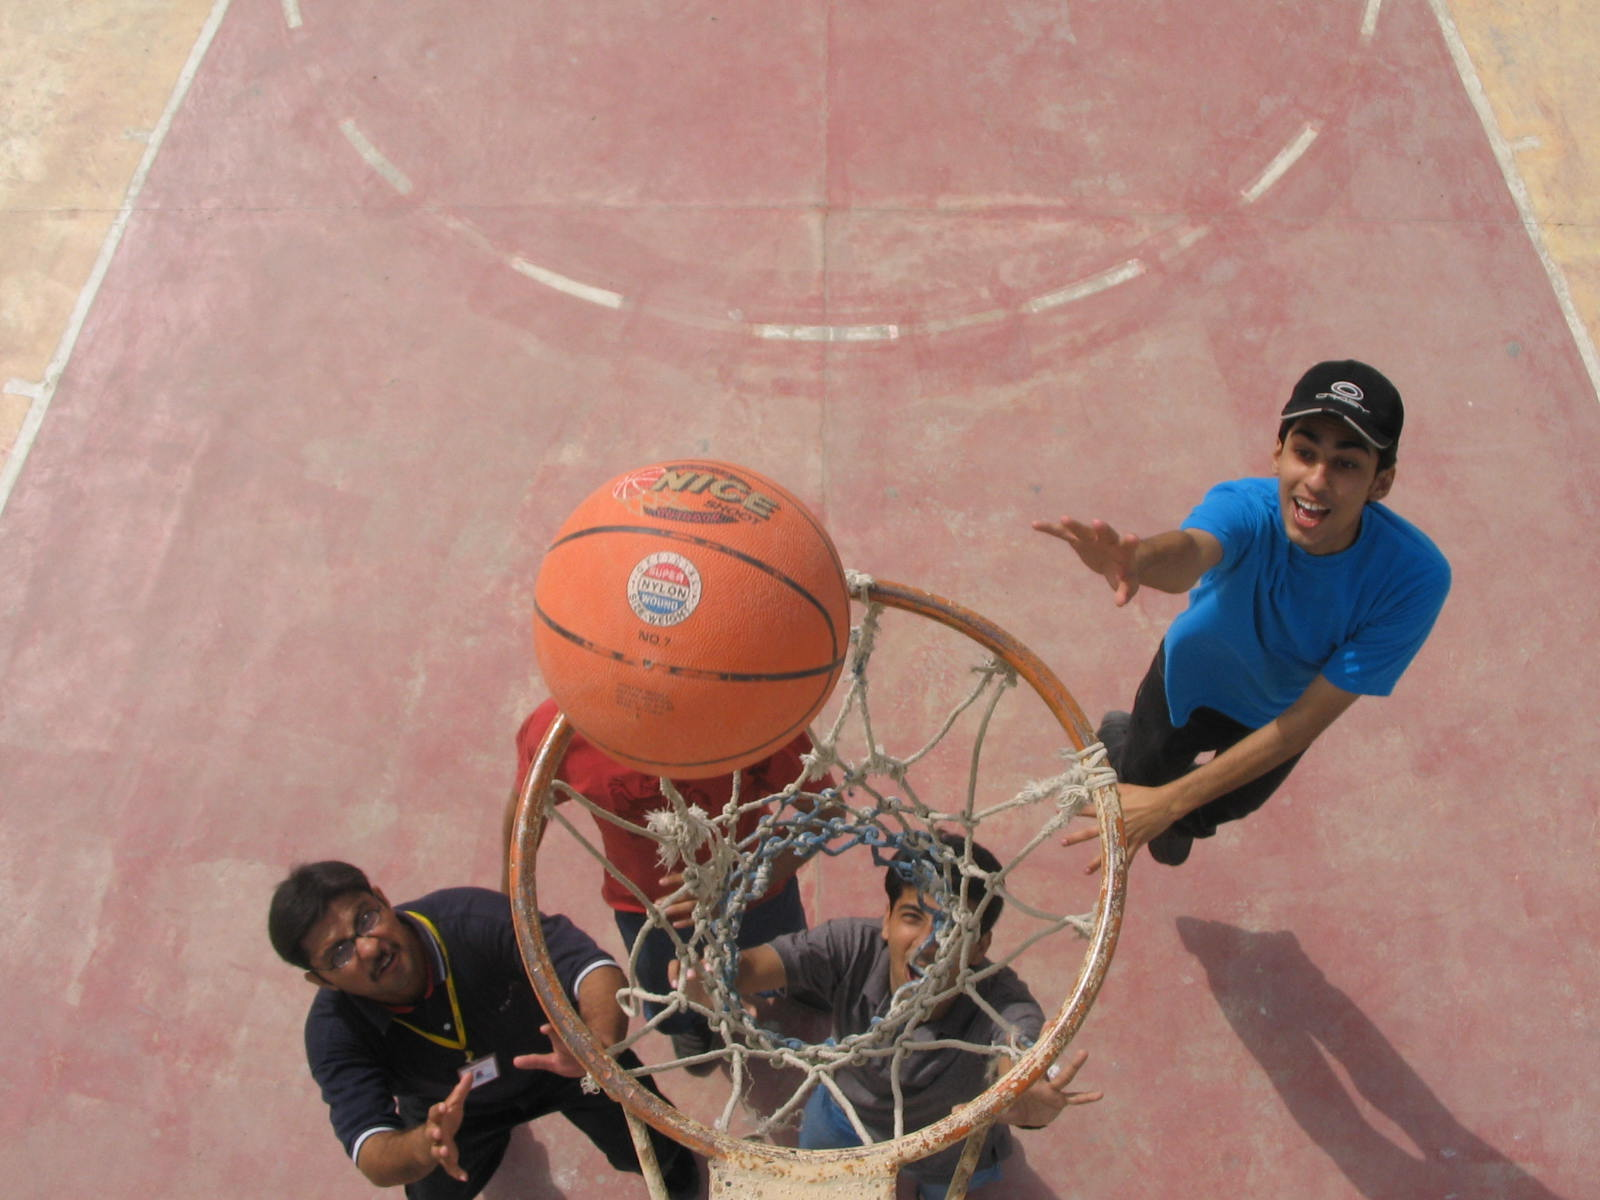 Ball in a basket, Activity, Basketball, Bspo06, Game, HQ Photo